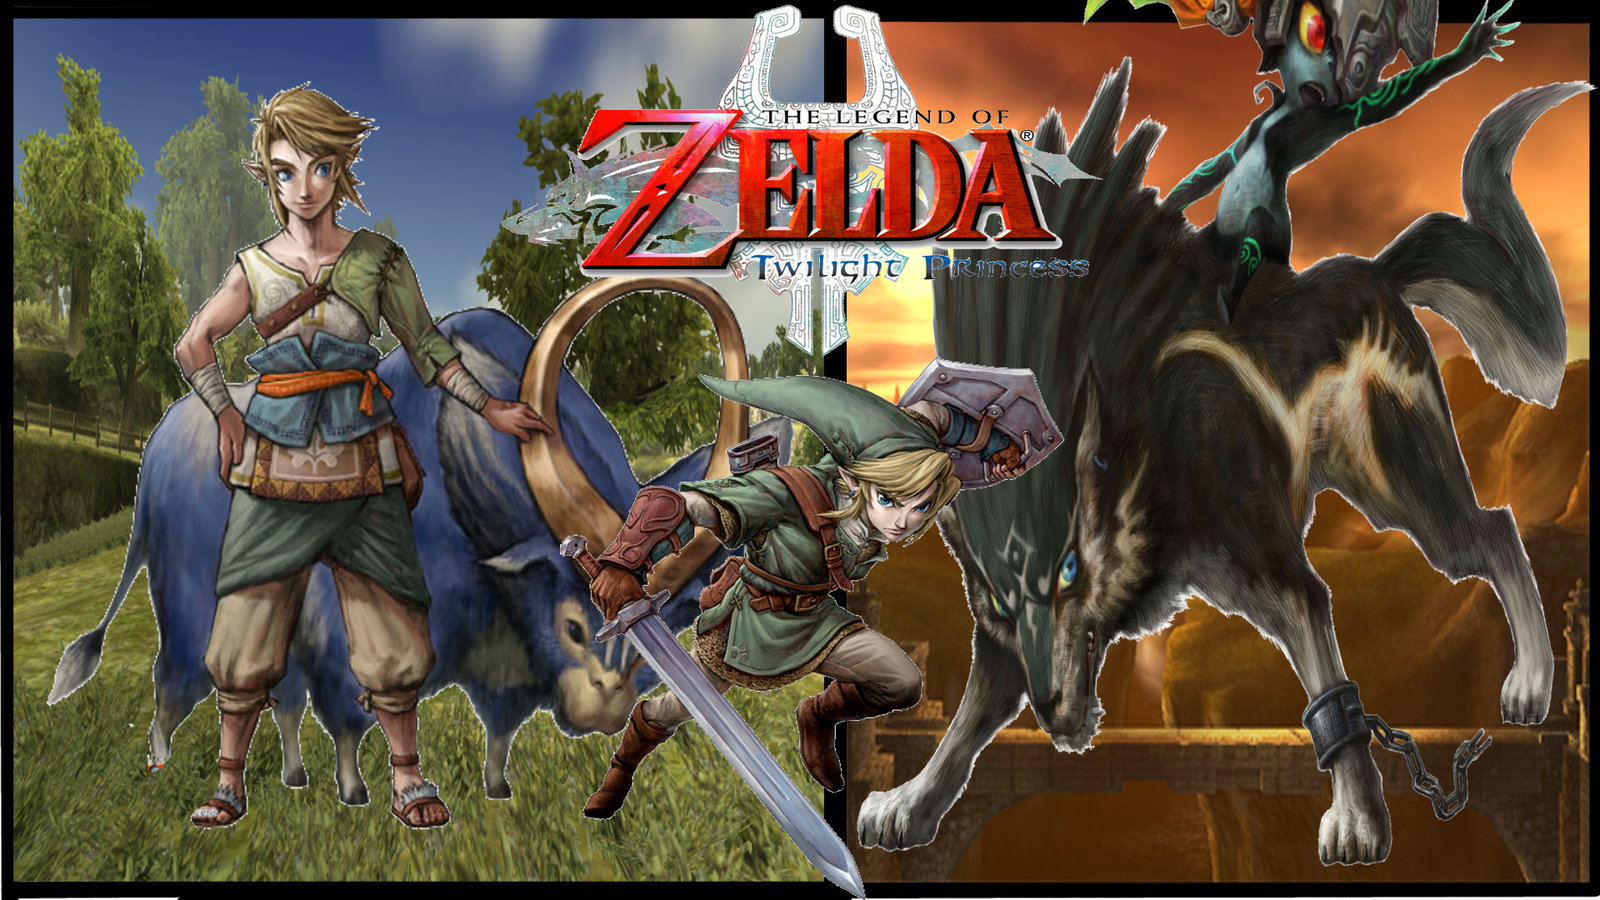 Zelda Twilight Princess Iphone Wallpaper Twilight princ 1600x900